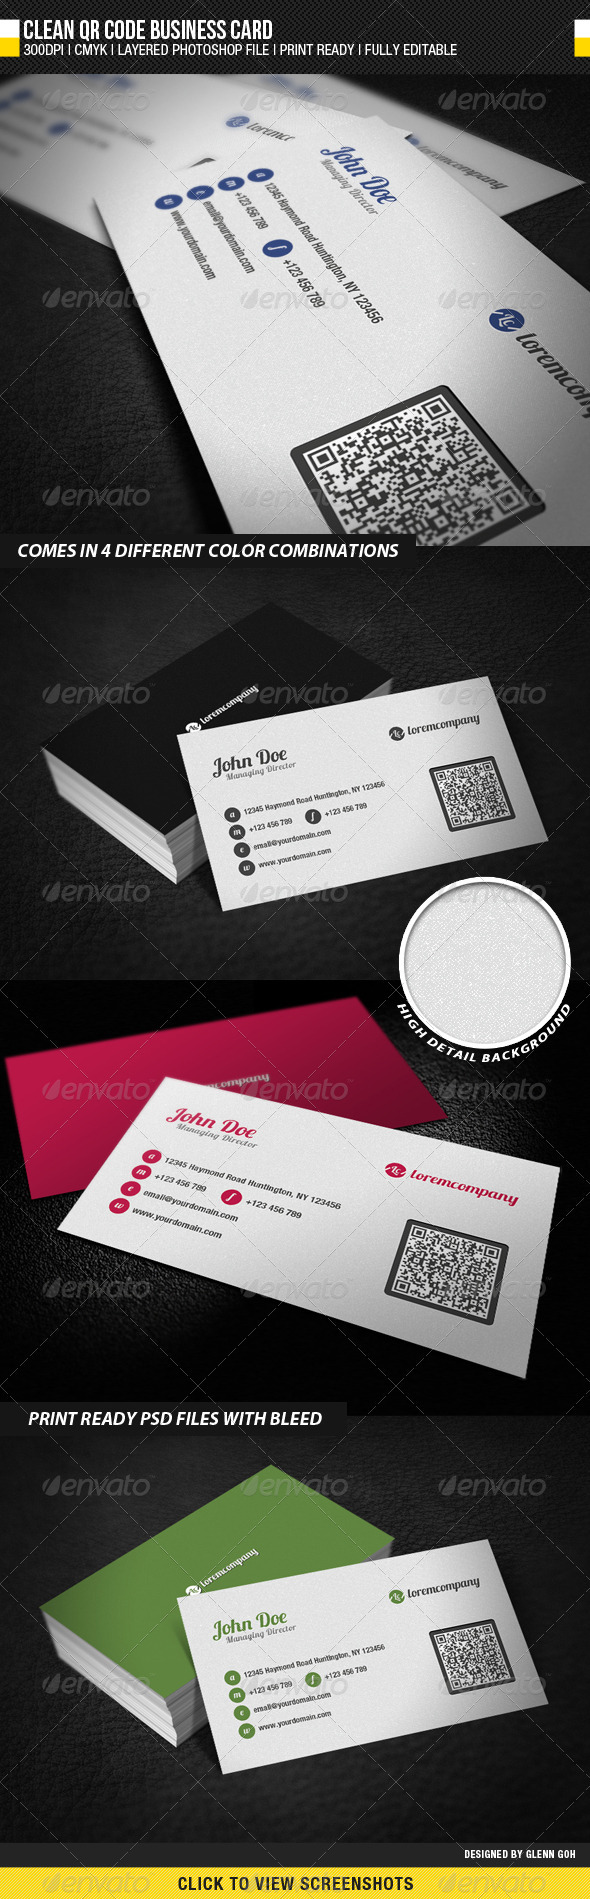 Clean QR Code Business Card - Corporate Business Cards